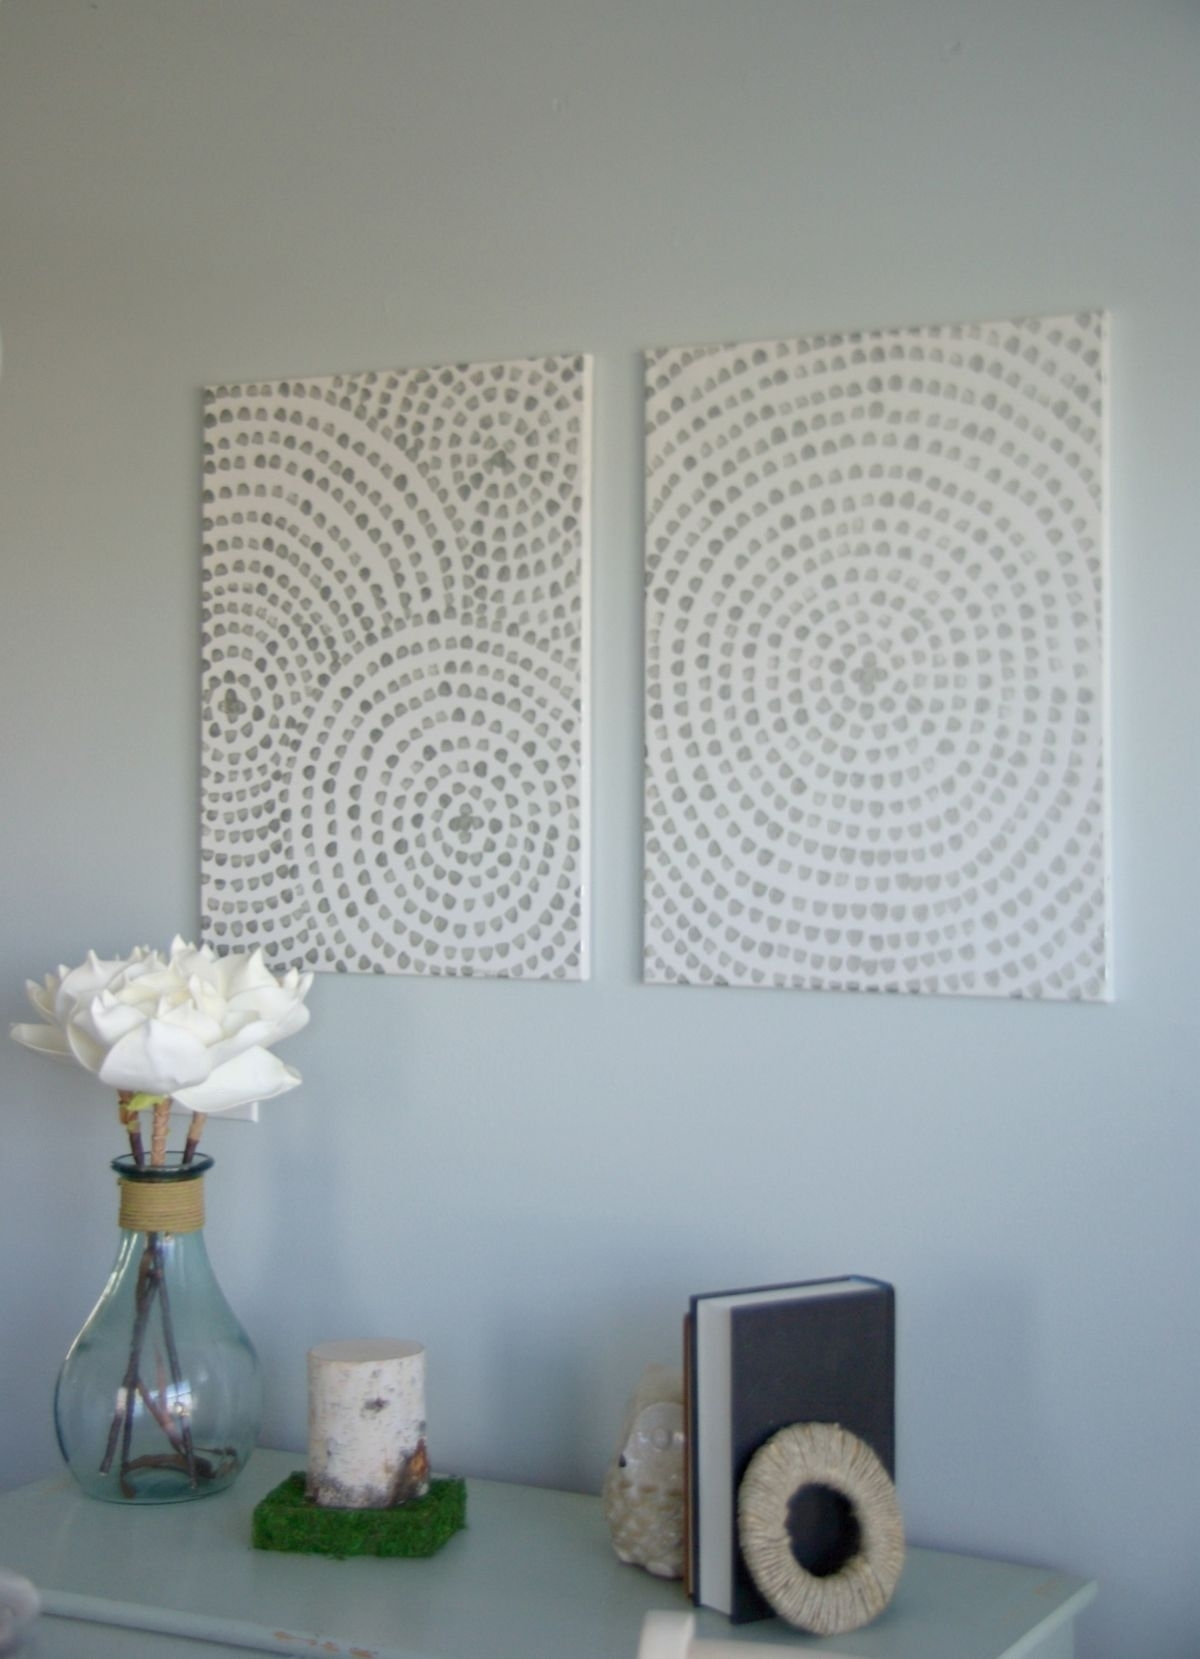 Diy Canvas Wall Art – A Low Cost Way To Add Art To Your Home | Diy For Latest Diy Abstract Canvas Wall Art (View 9 of 20)